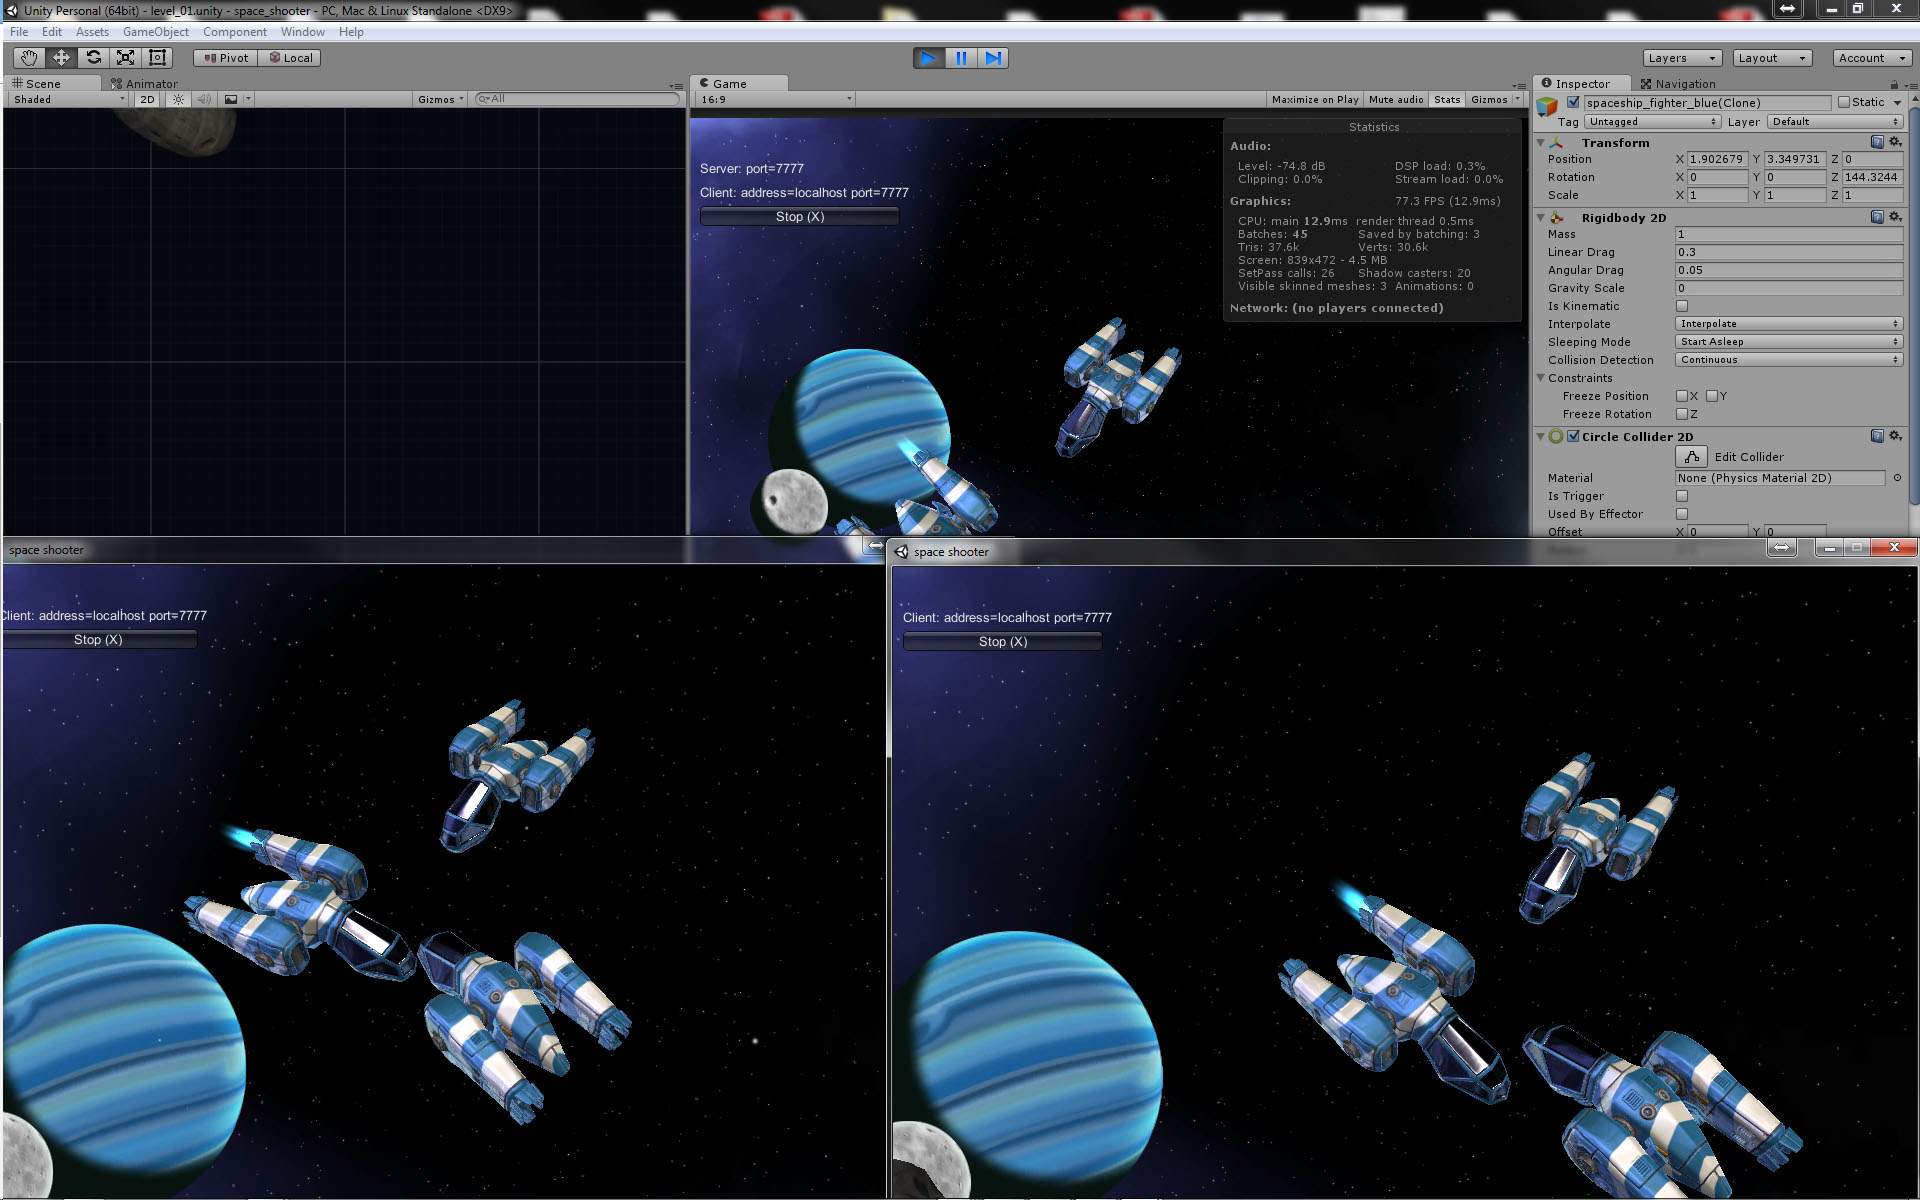 Unity] Space Shooter (Working Title) — polycount